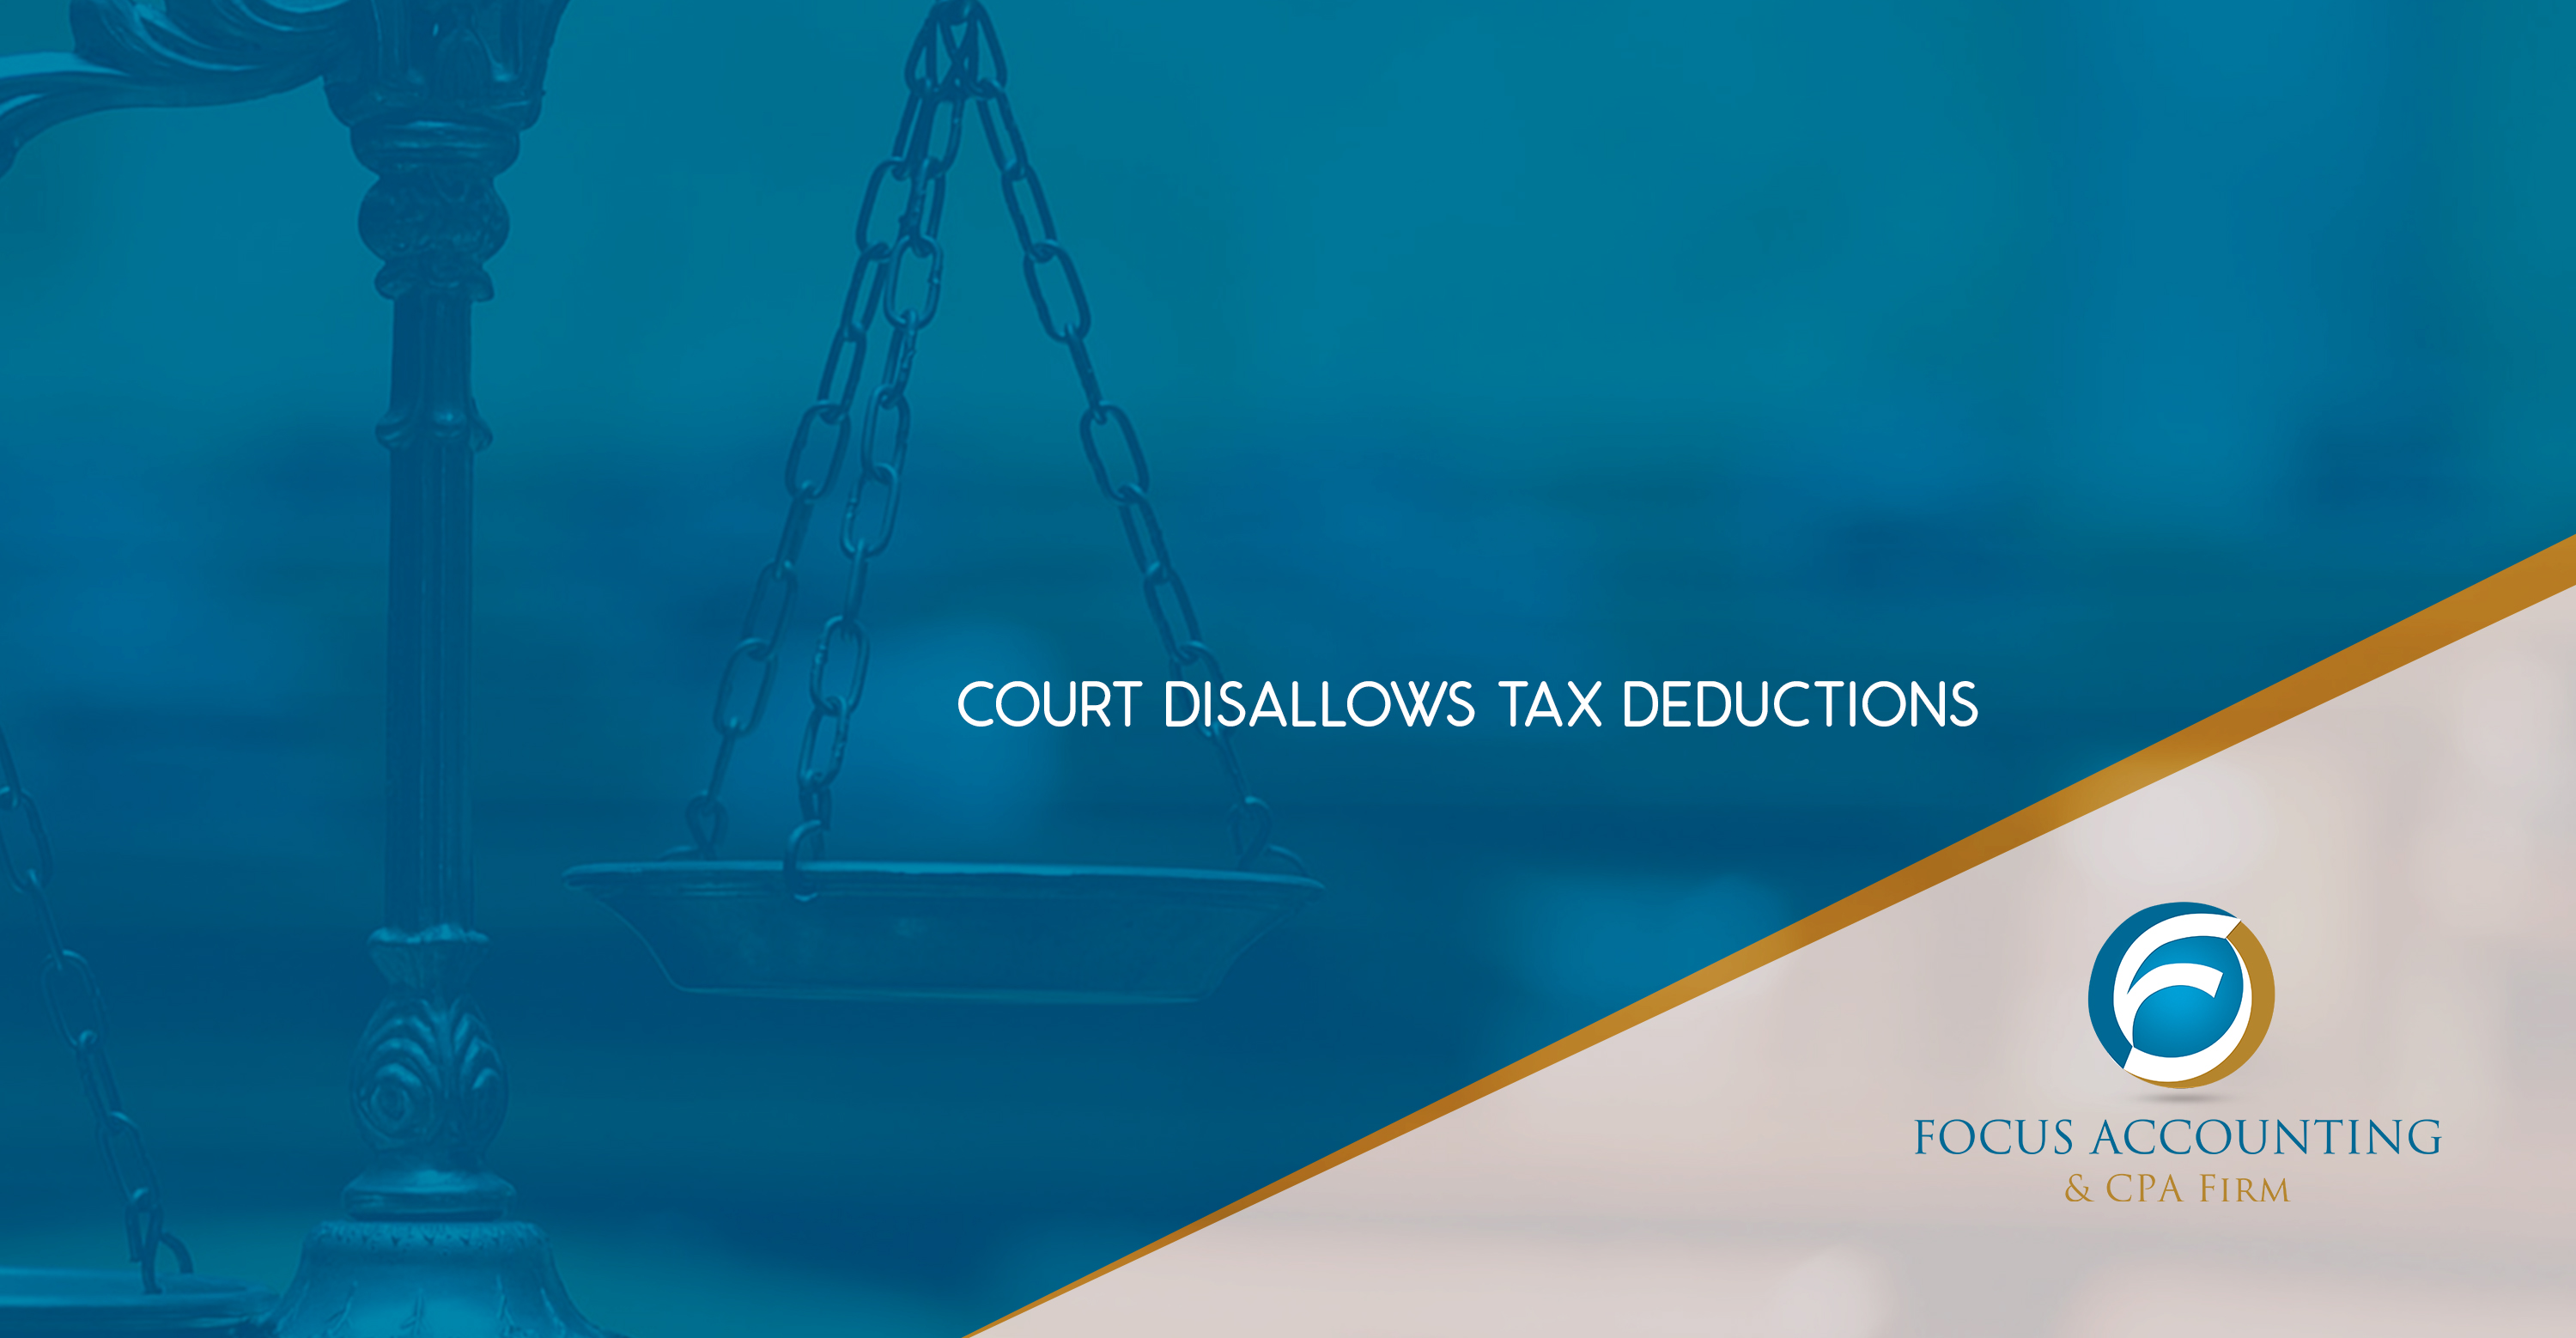 COURT DISALLOWS TAX DEDUCTIONS